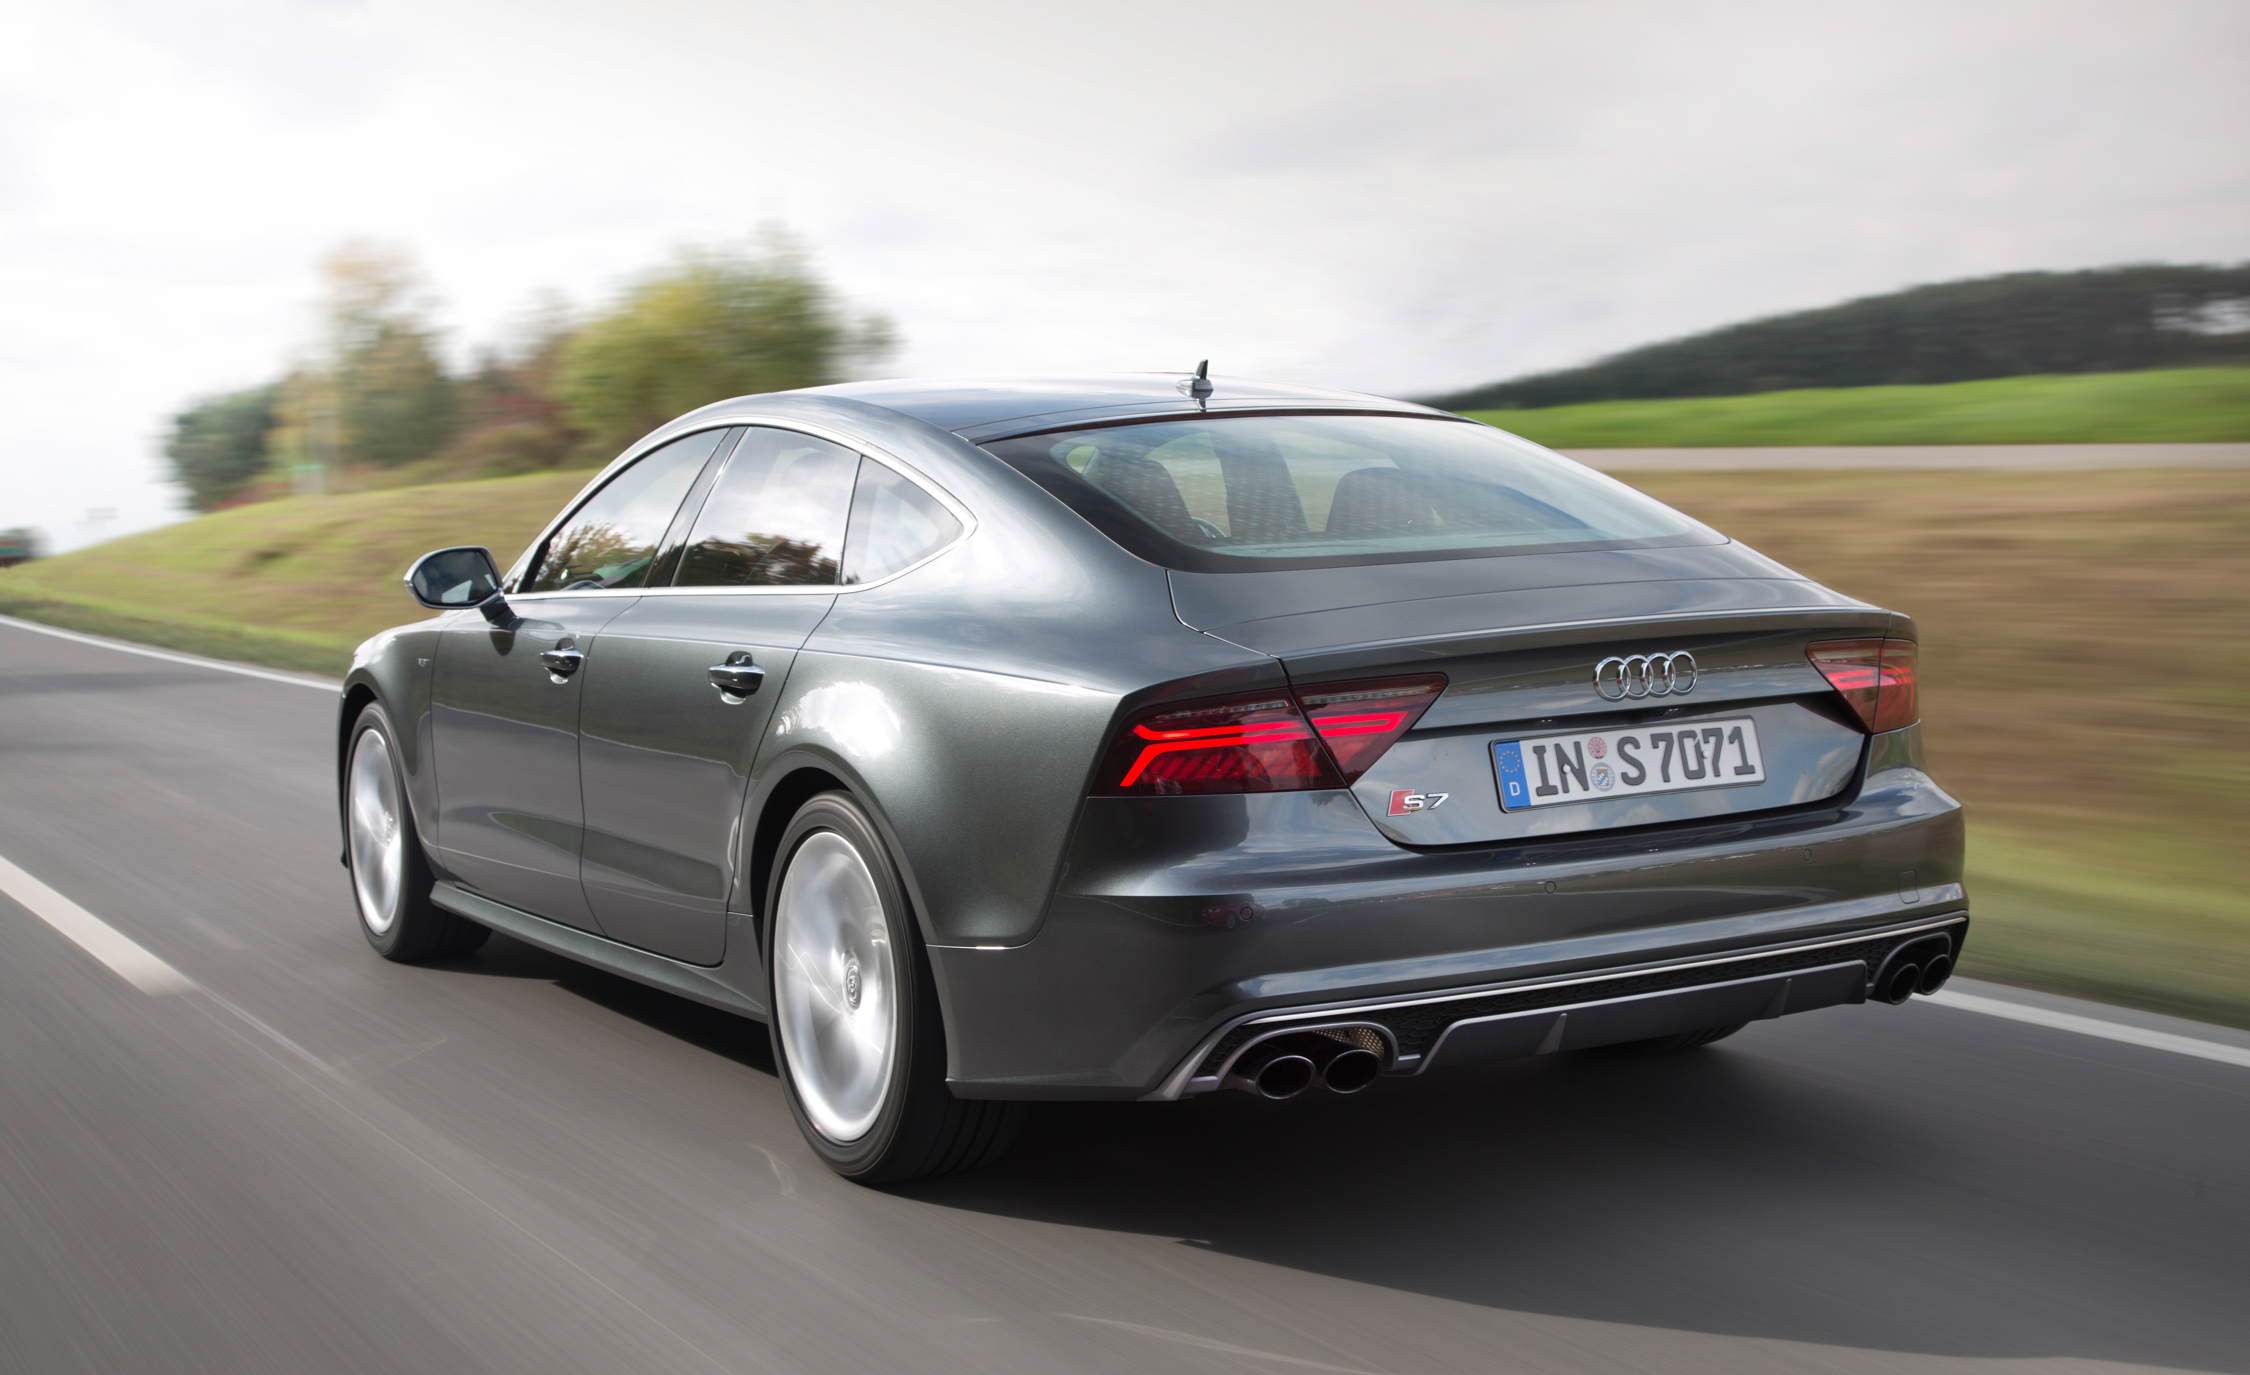 2015 Audi A3 Sedan Rear Side View Photo 35: 2016 Audi S7 Specification And Price #7220